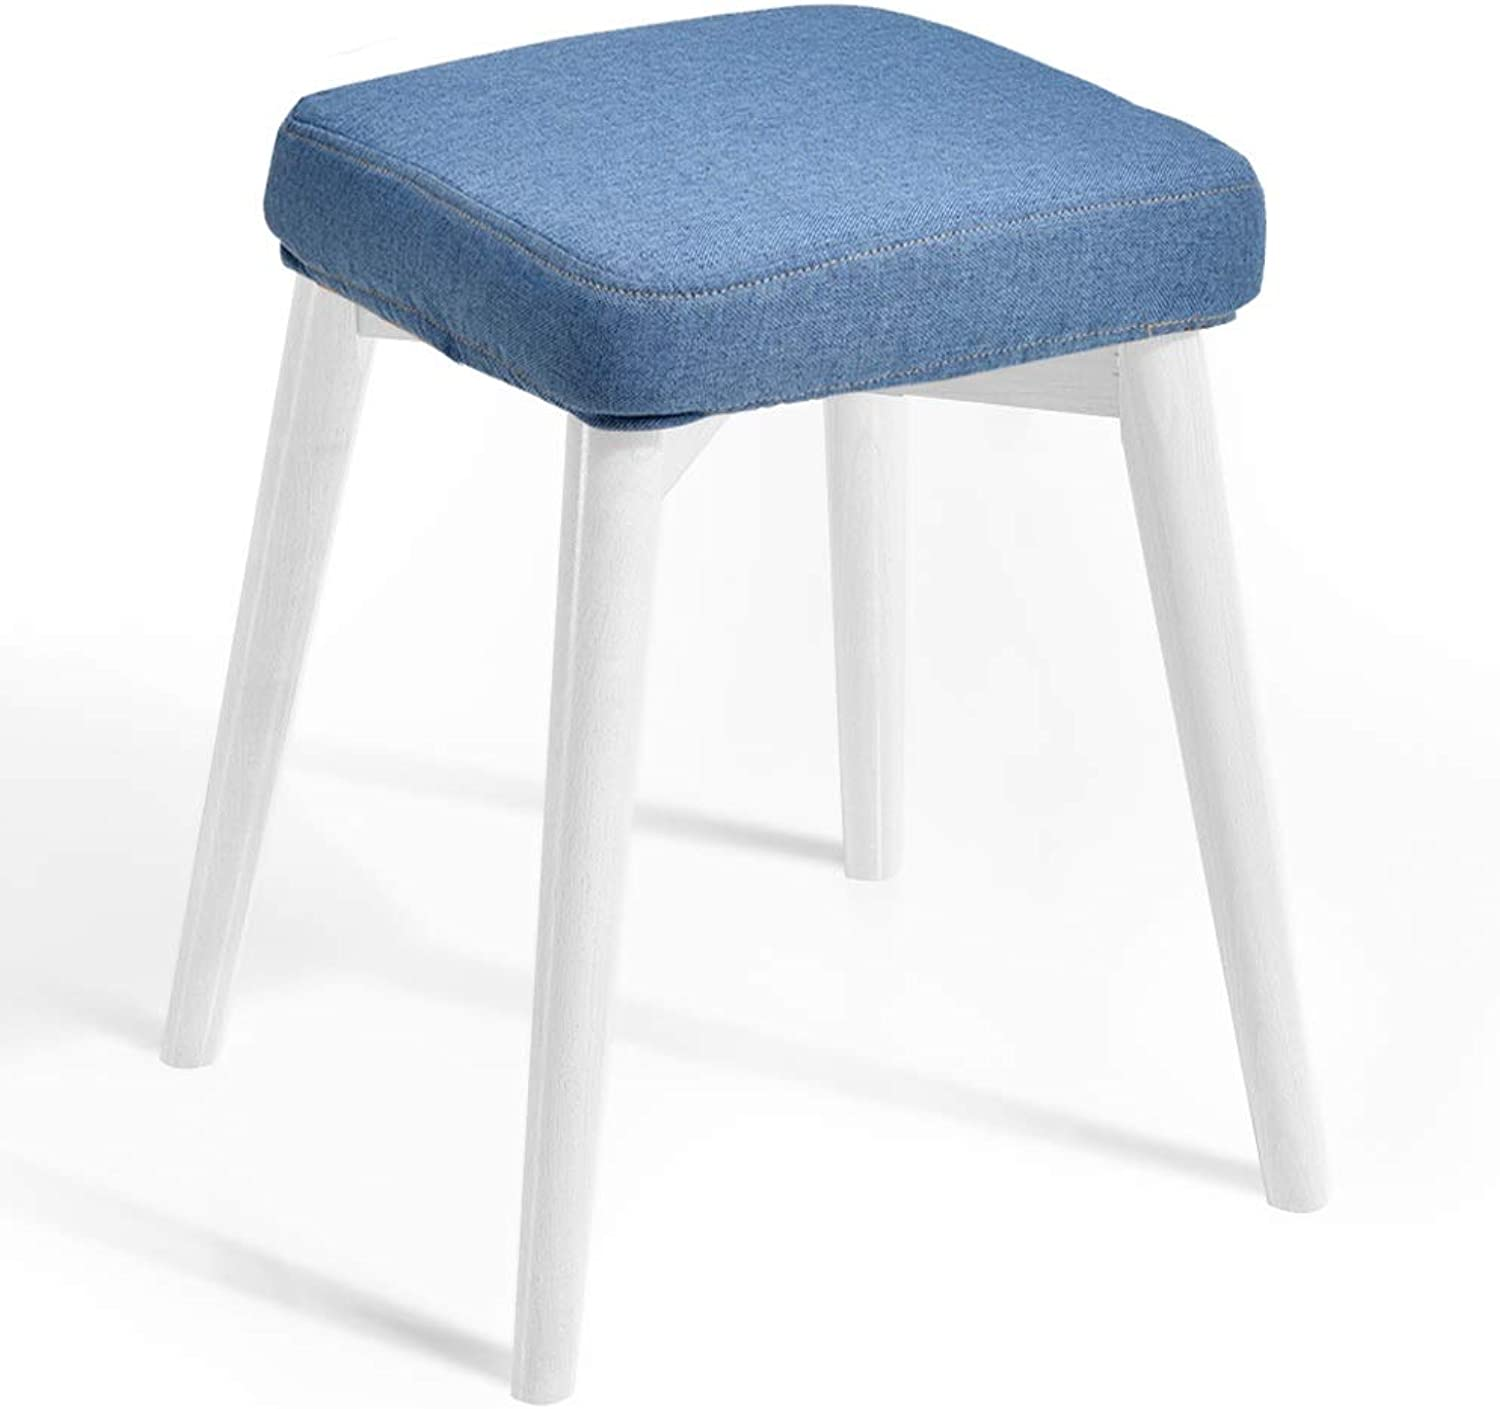 Stool Furniture Footstool Square Four-Legged Bracket Washable Chair (color   K)